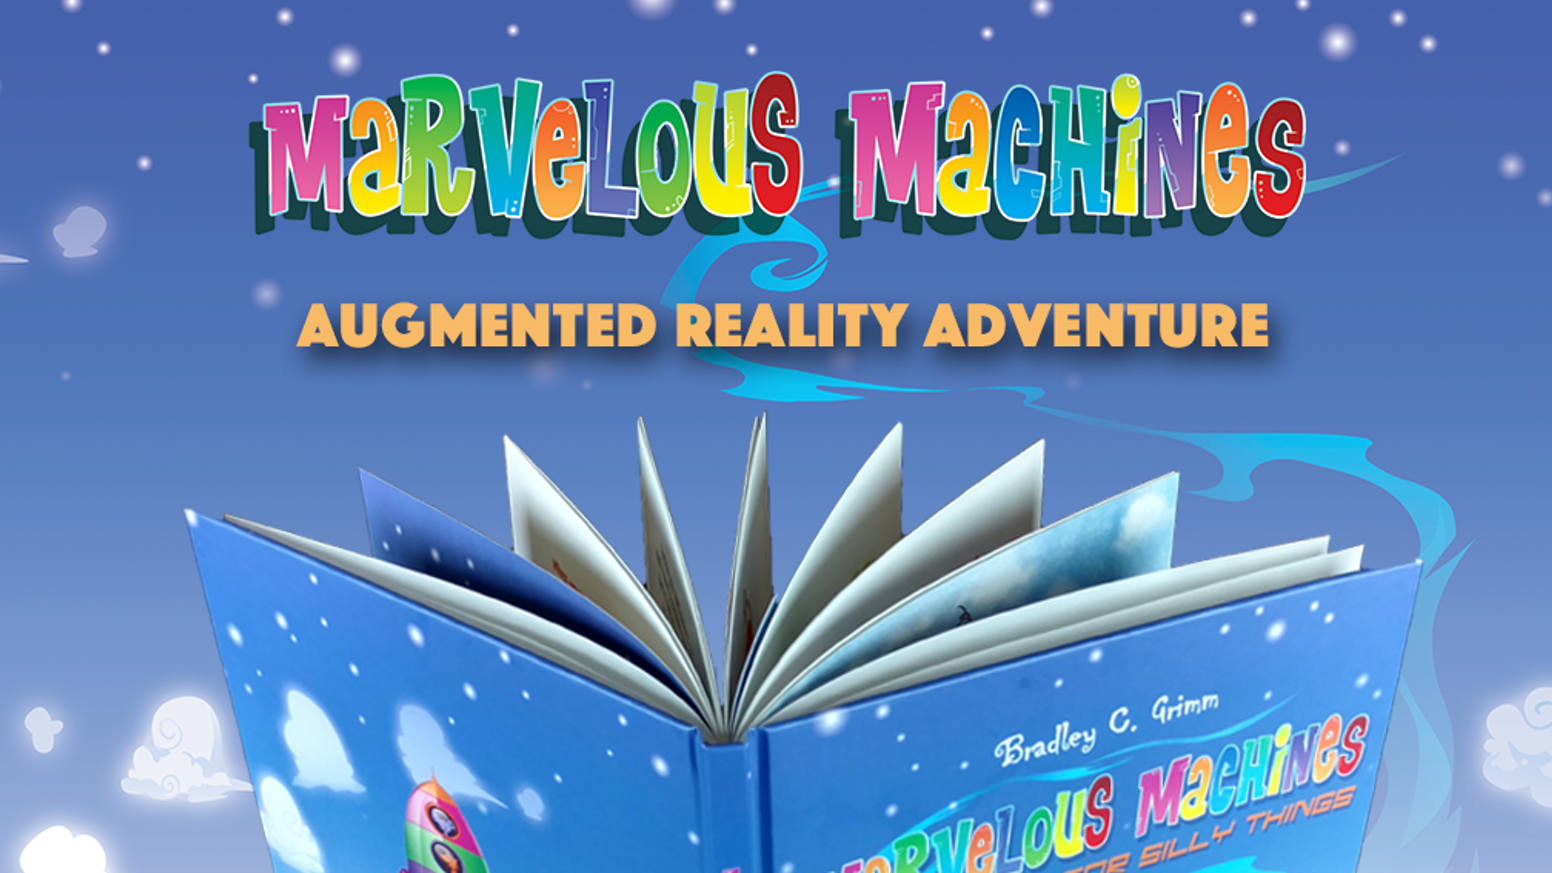 A fun augmented reality children's book.  Let's explore hidden worlds together!